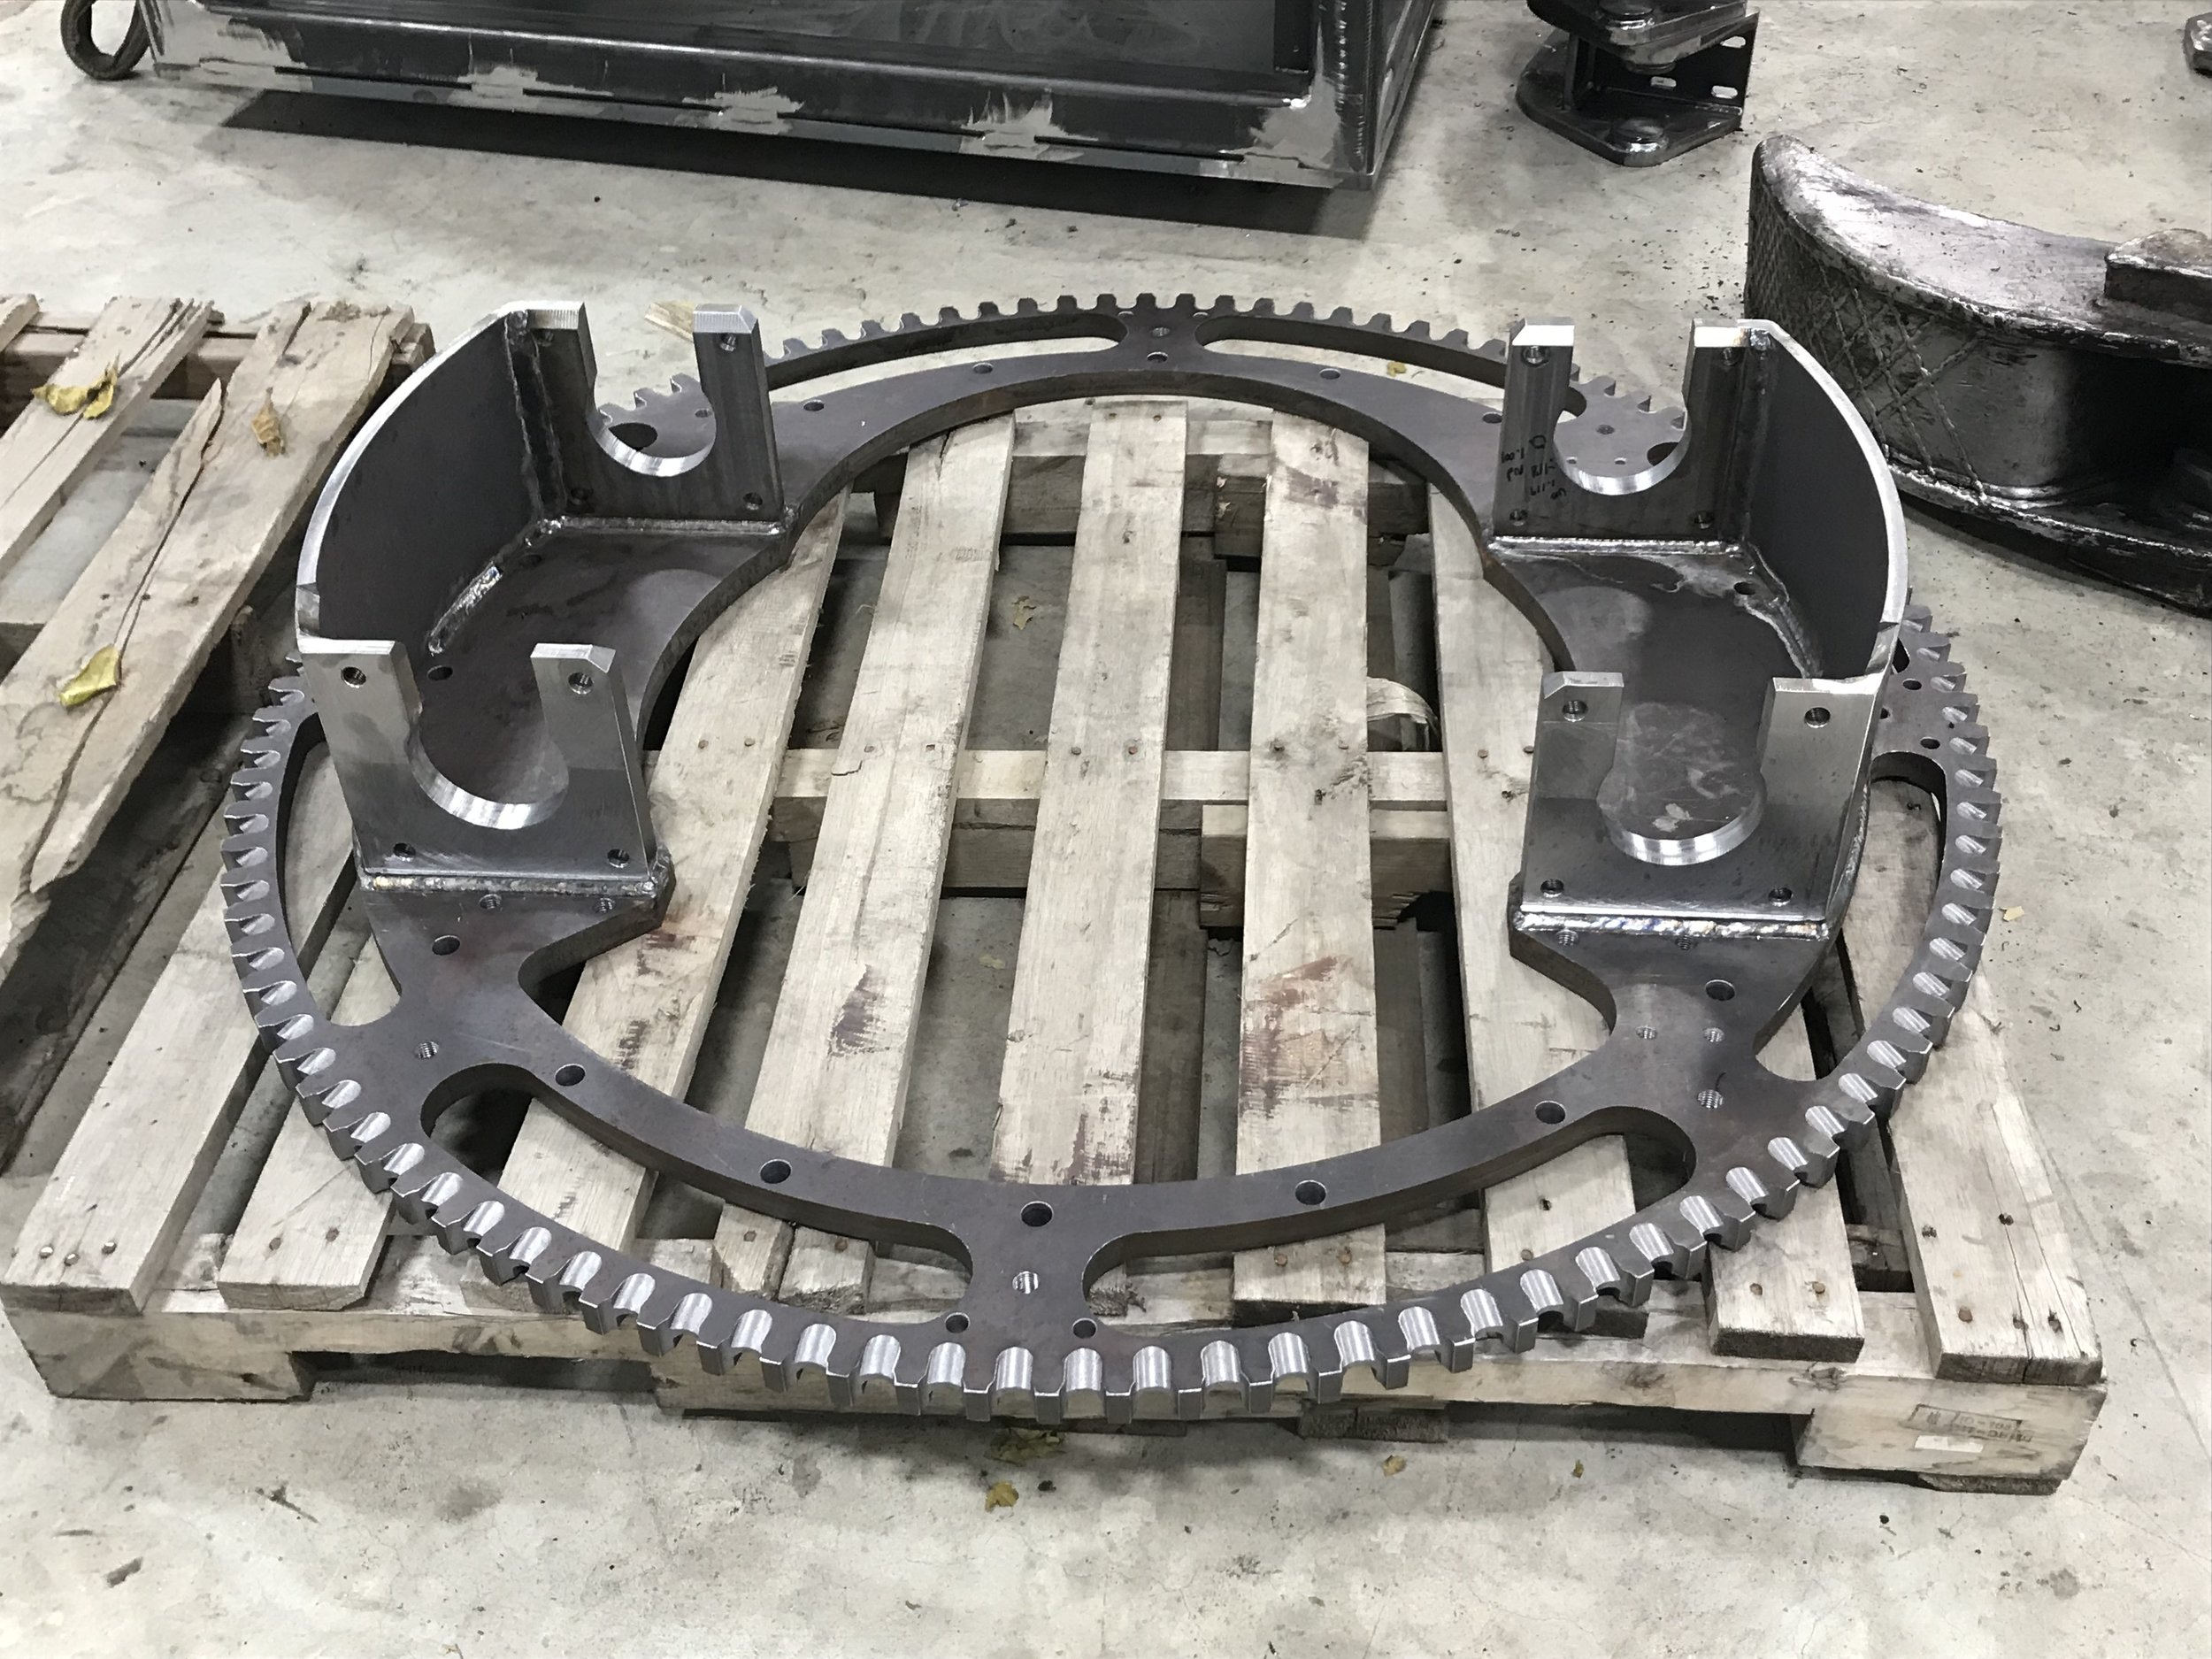 Jetco Saw Mill Industry 1